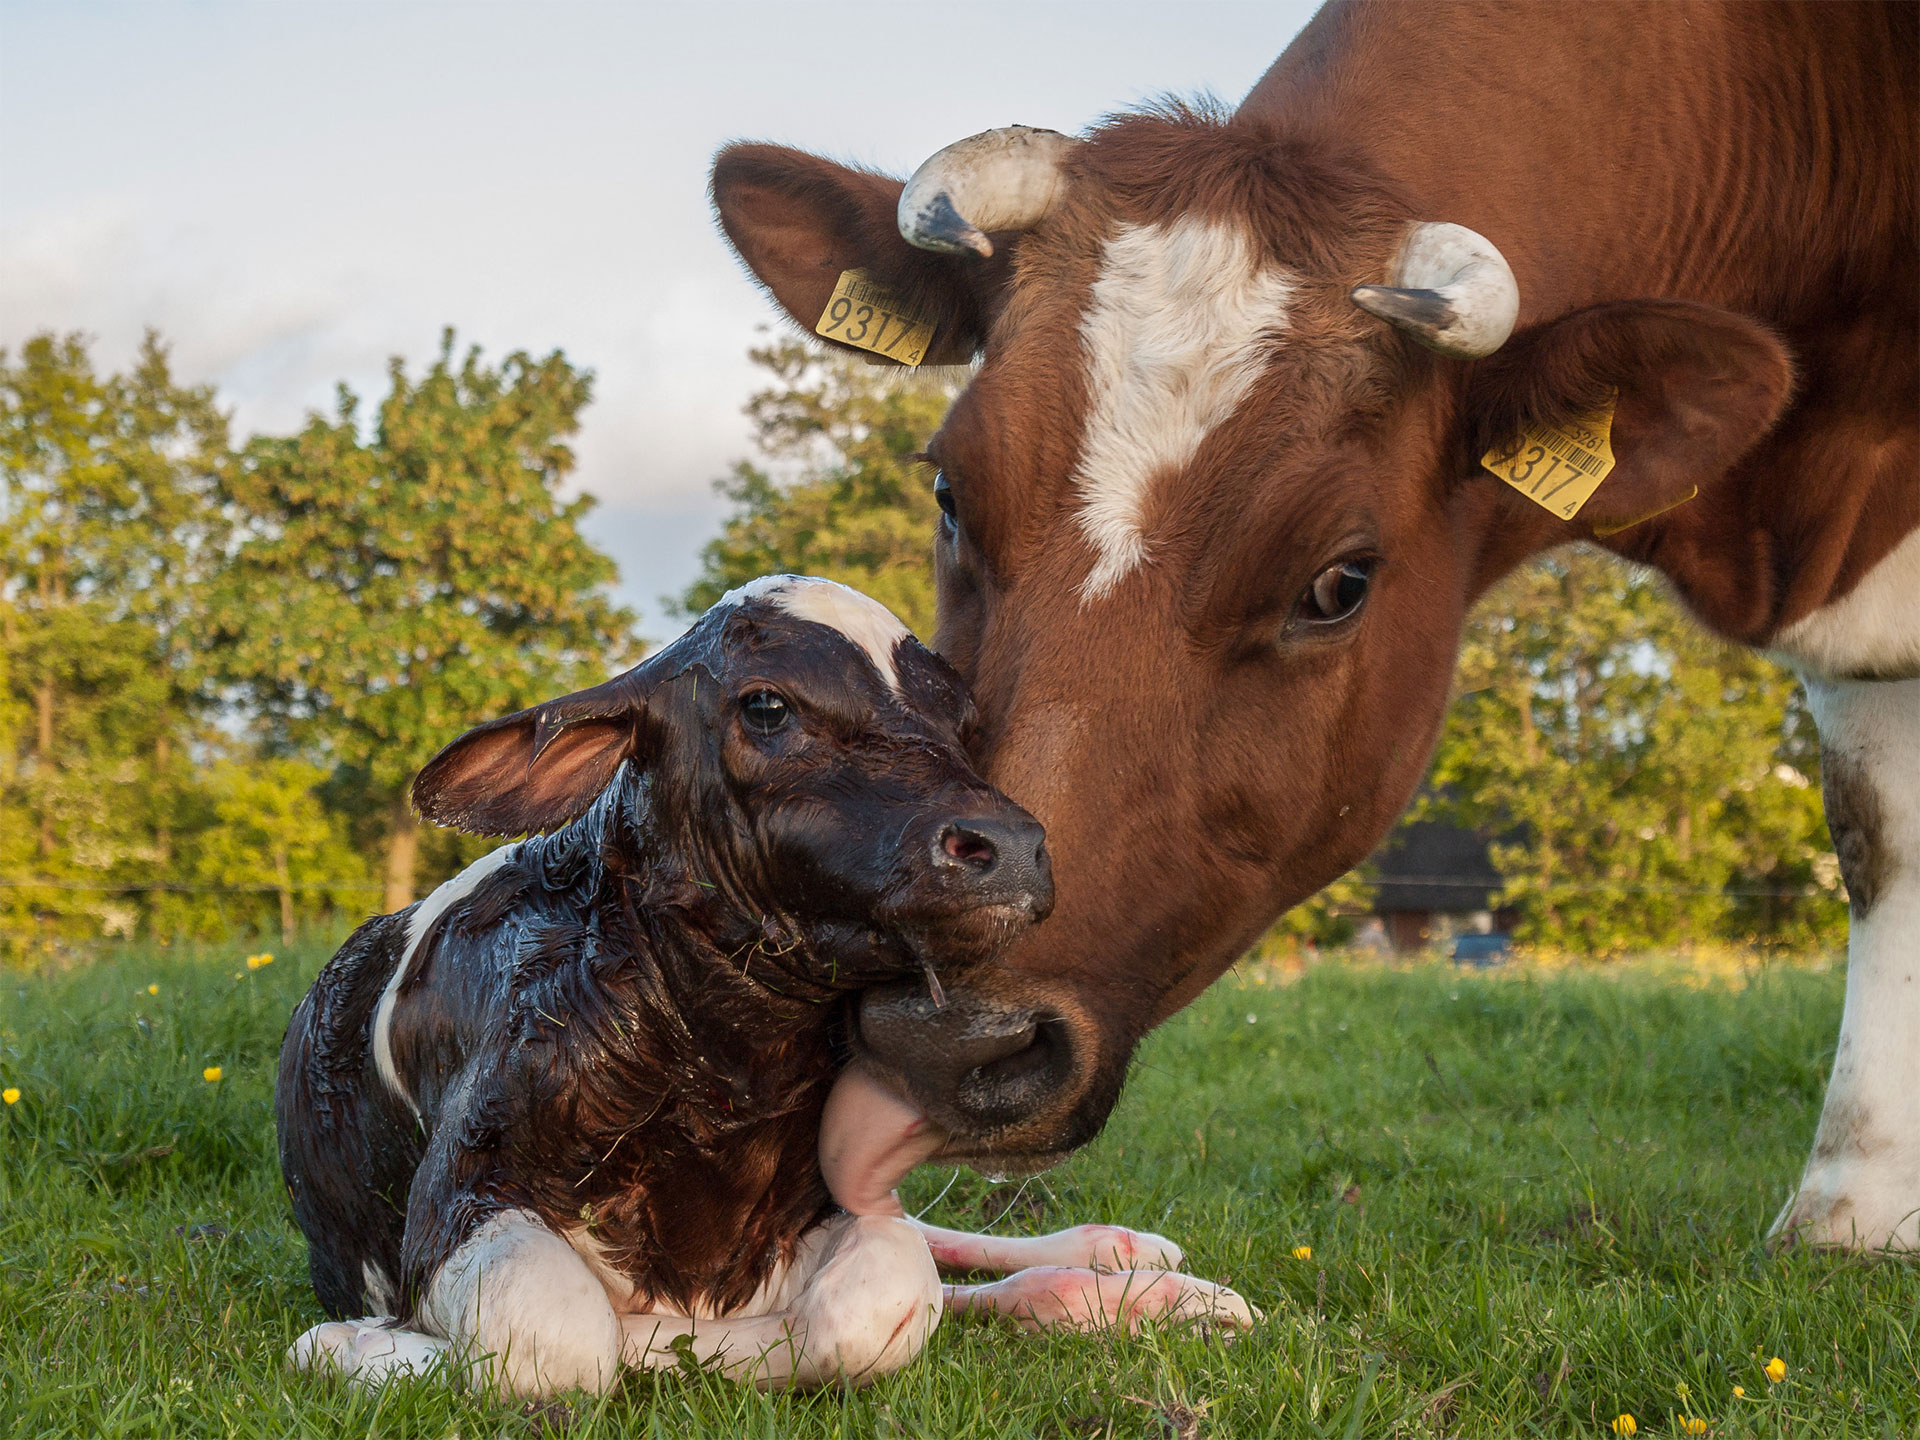 A calf being licked by her mother.